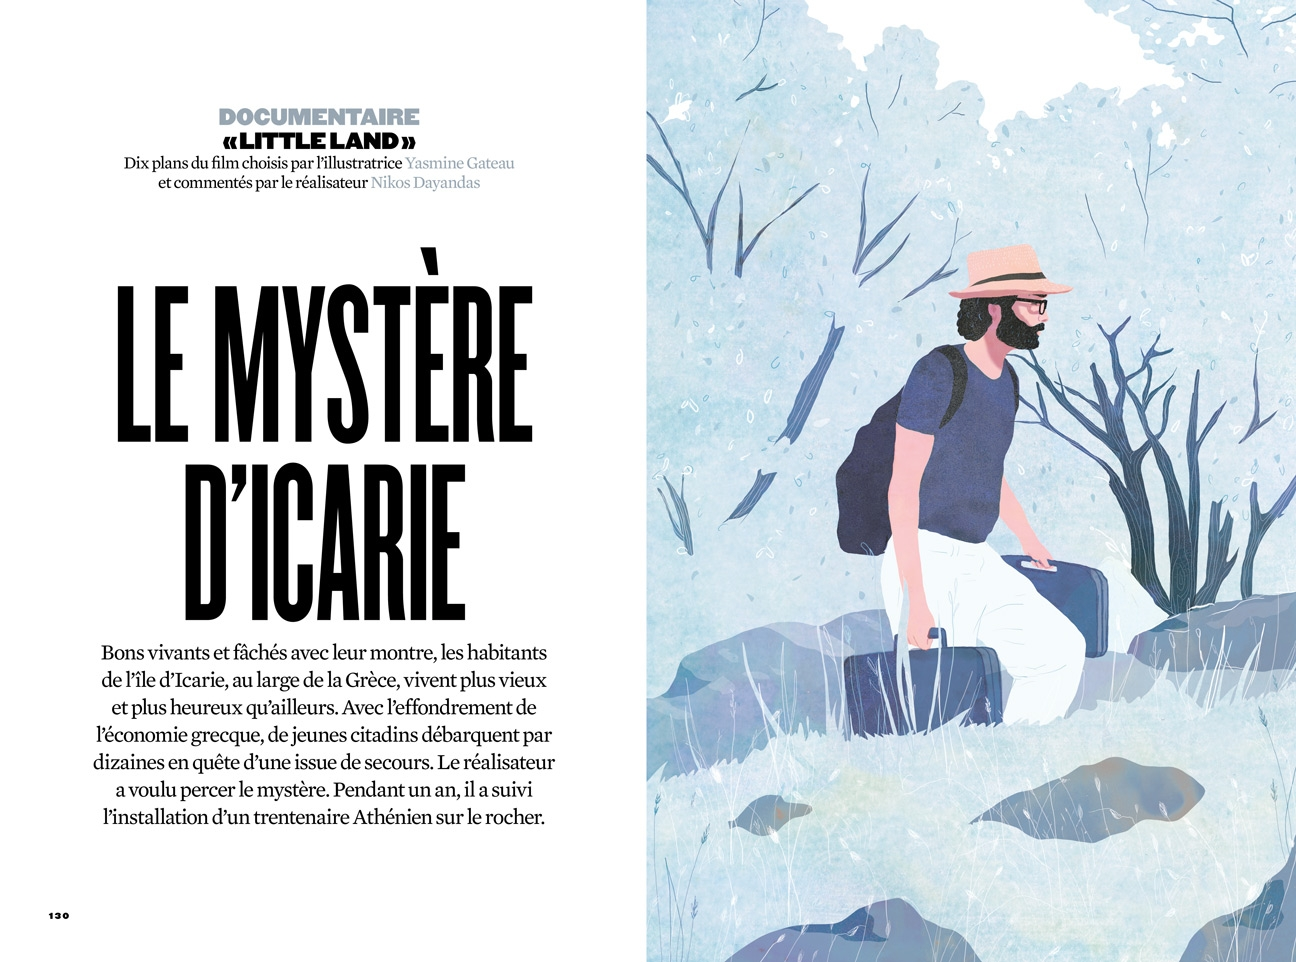 yasmine gateau, XXI, illustration, editorial illustration, little land, ikaria